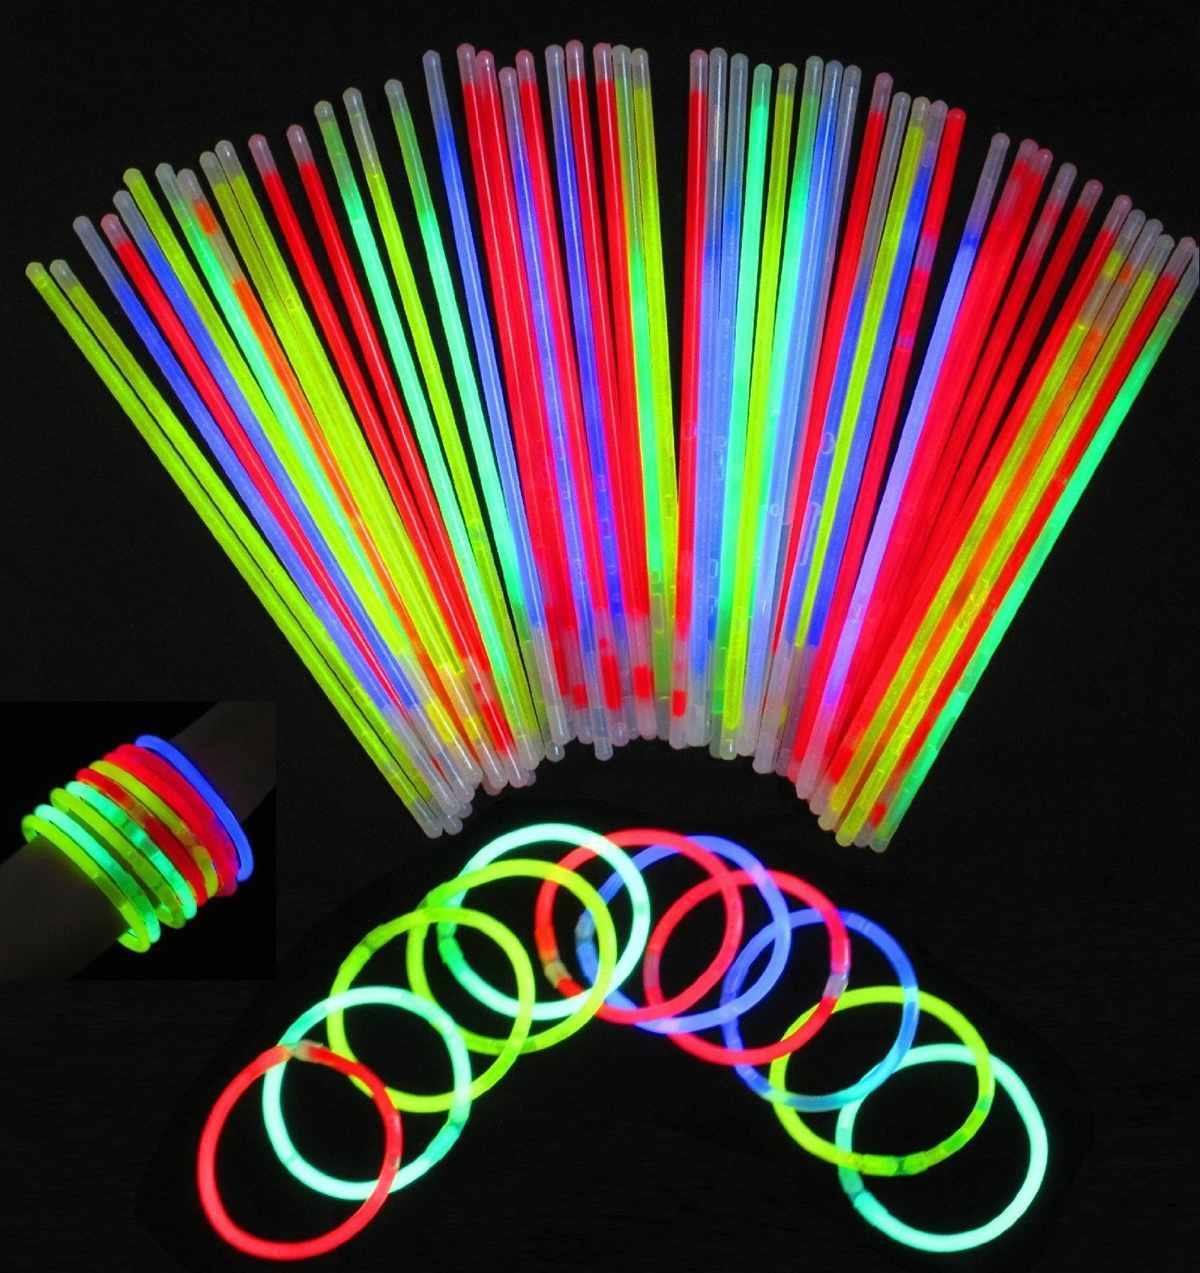 100pcs Multi Mix Color Glow Sticks Safe Light Stick Fluorescent For Event Festive Party Supplies Concert Decor Dark Party Lights